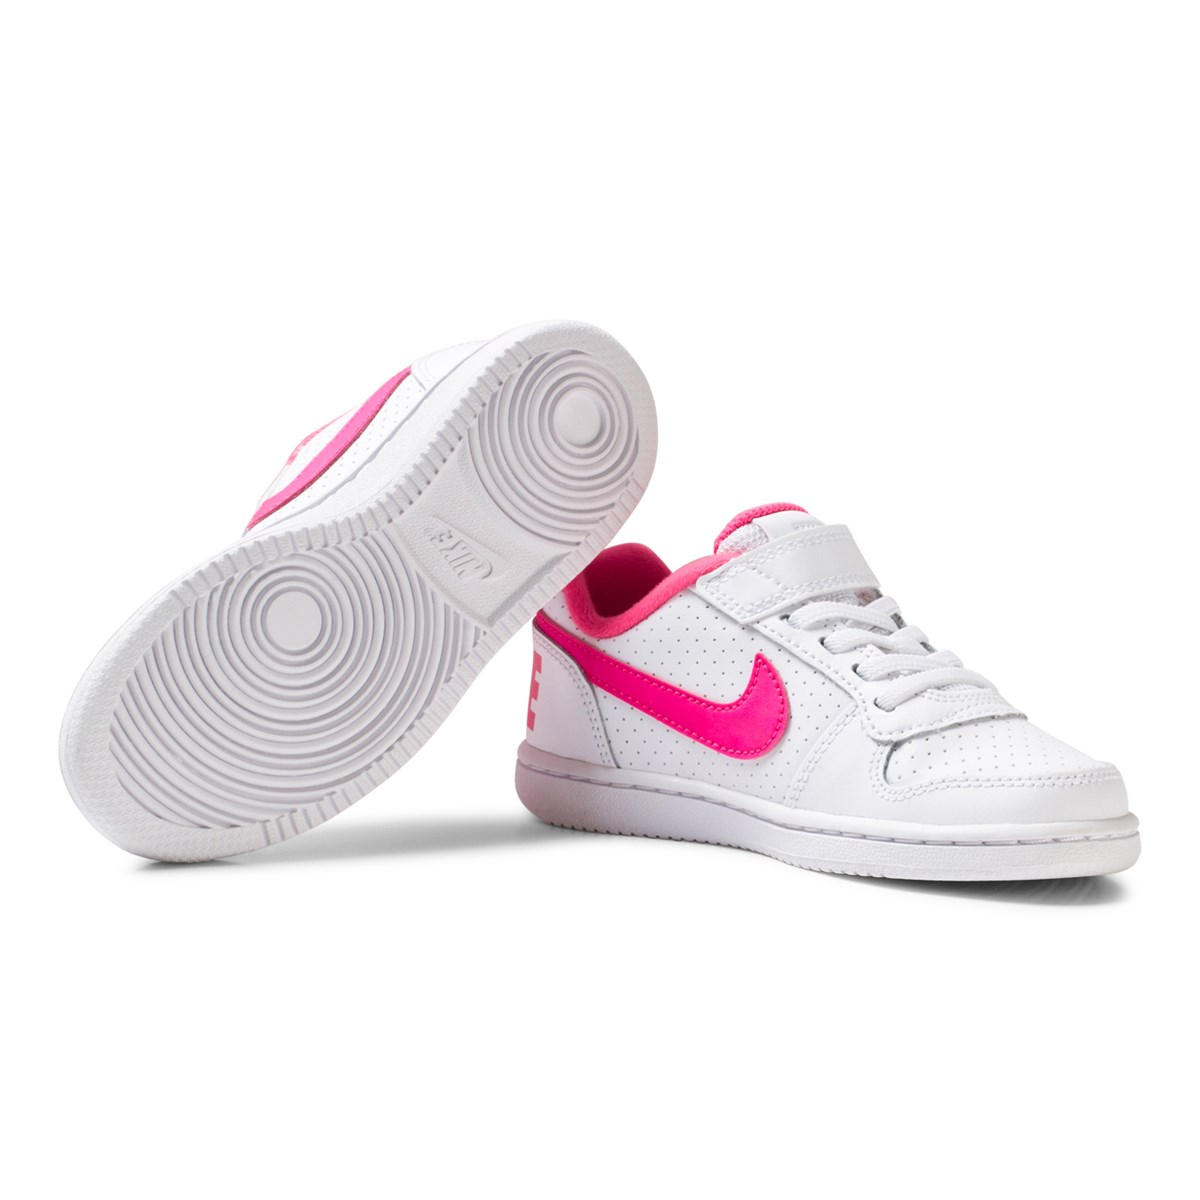 hot sales 87e7d c63a4 Nike Court Borough Low Kids Skor Vit - NIKE - Babyshop